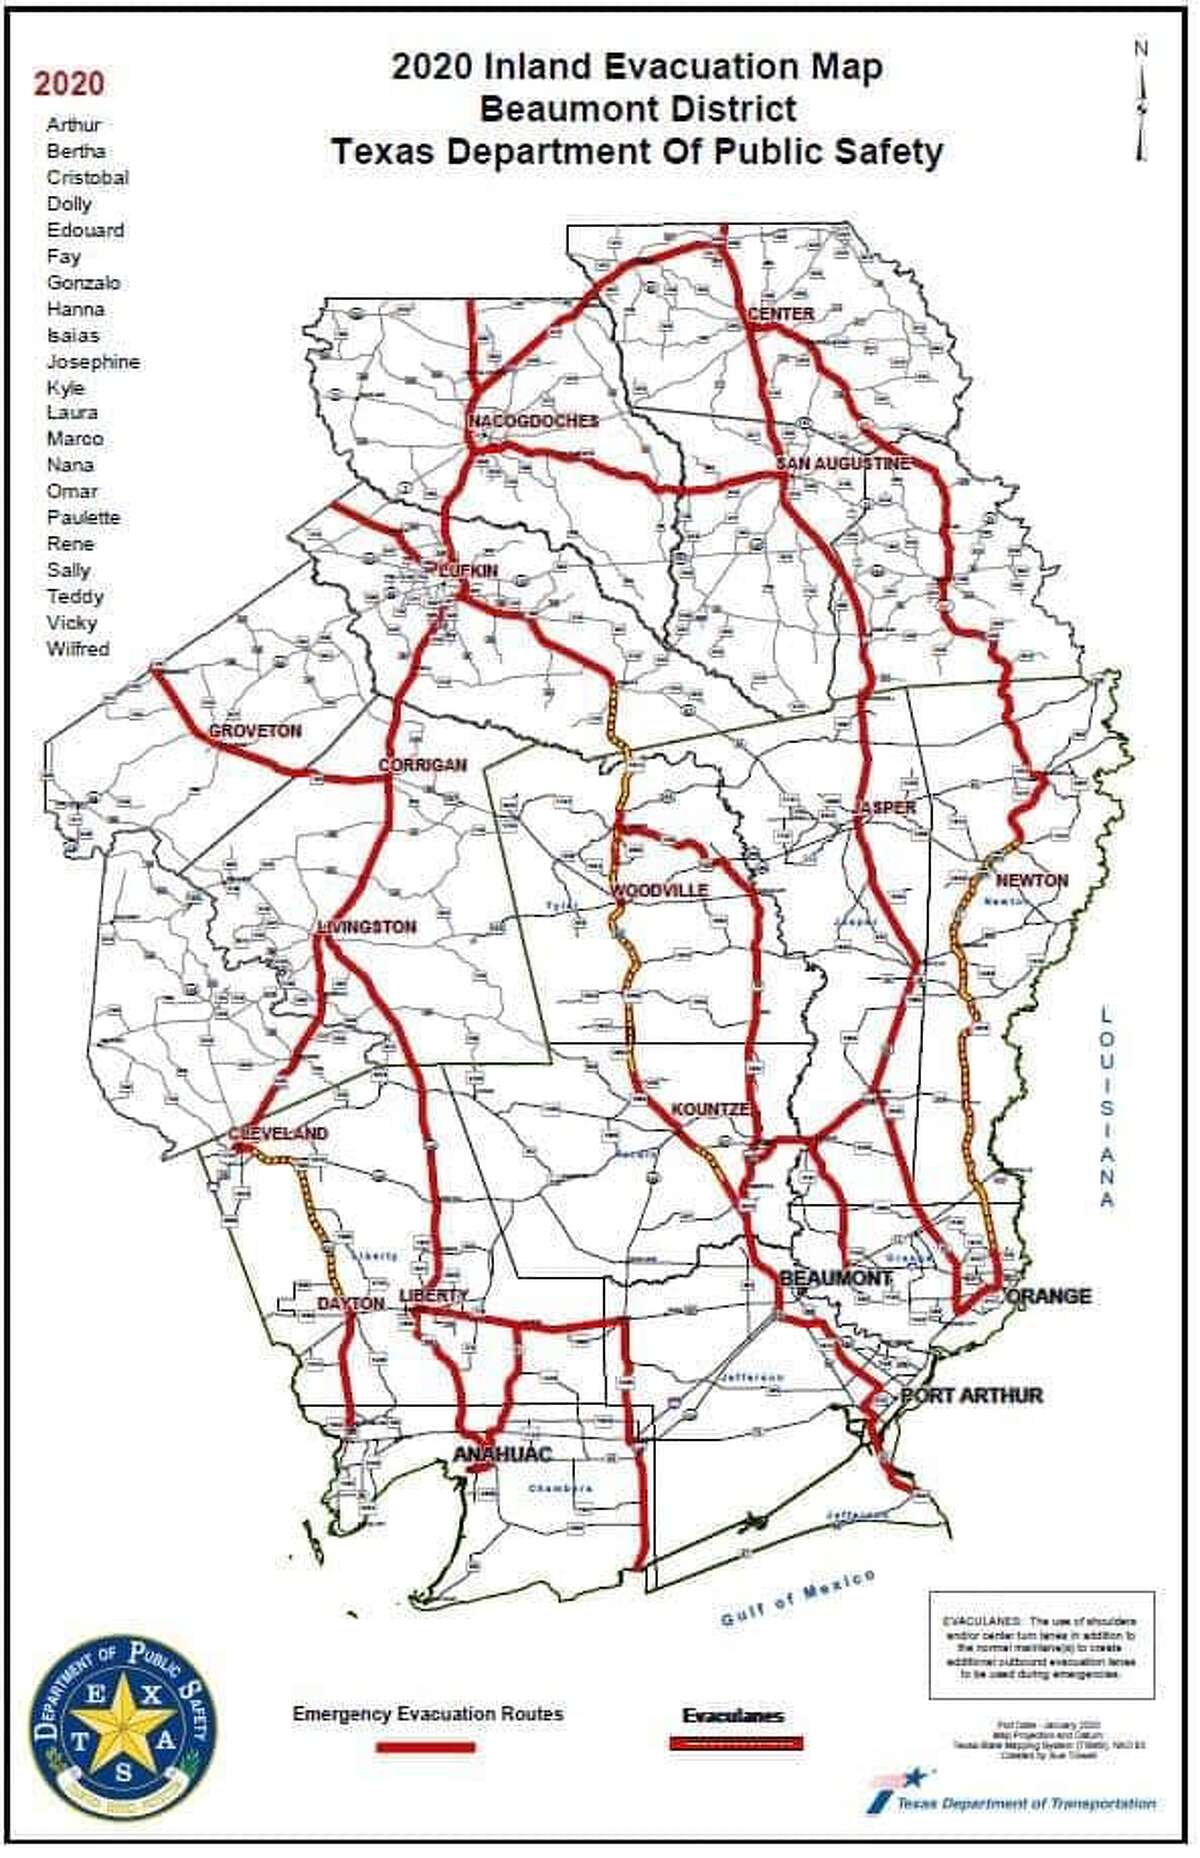 Texas Department of Public Safety evacuation routes